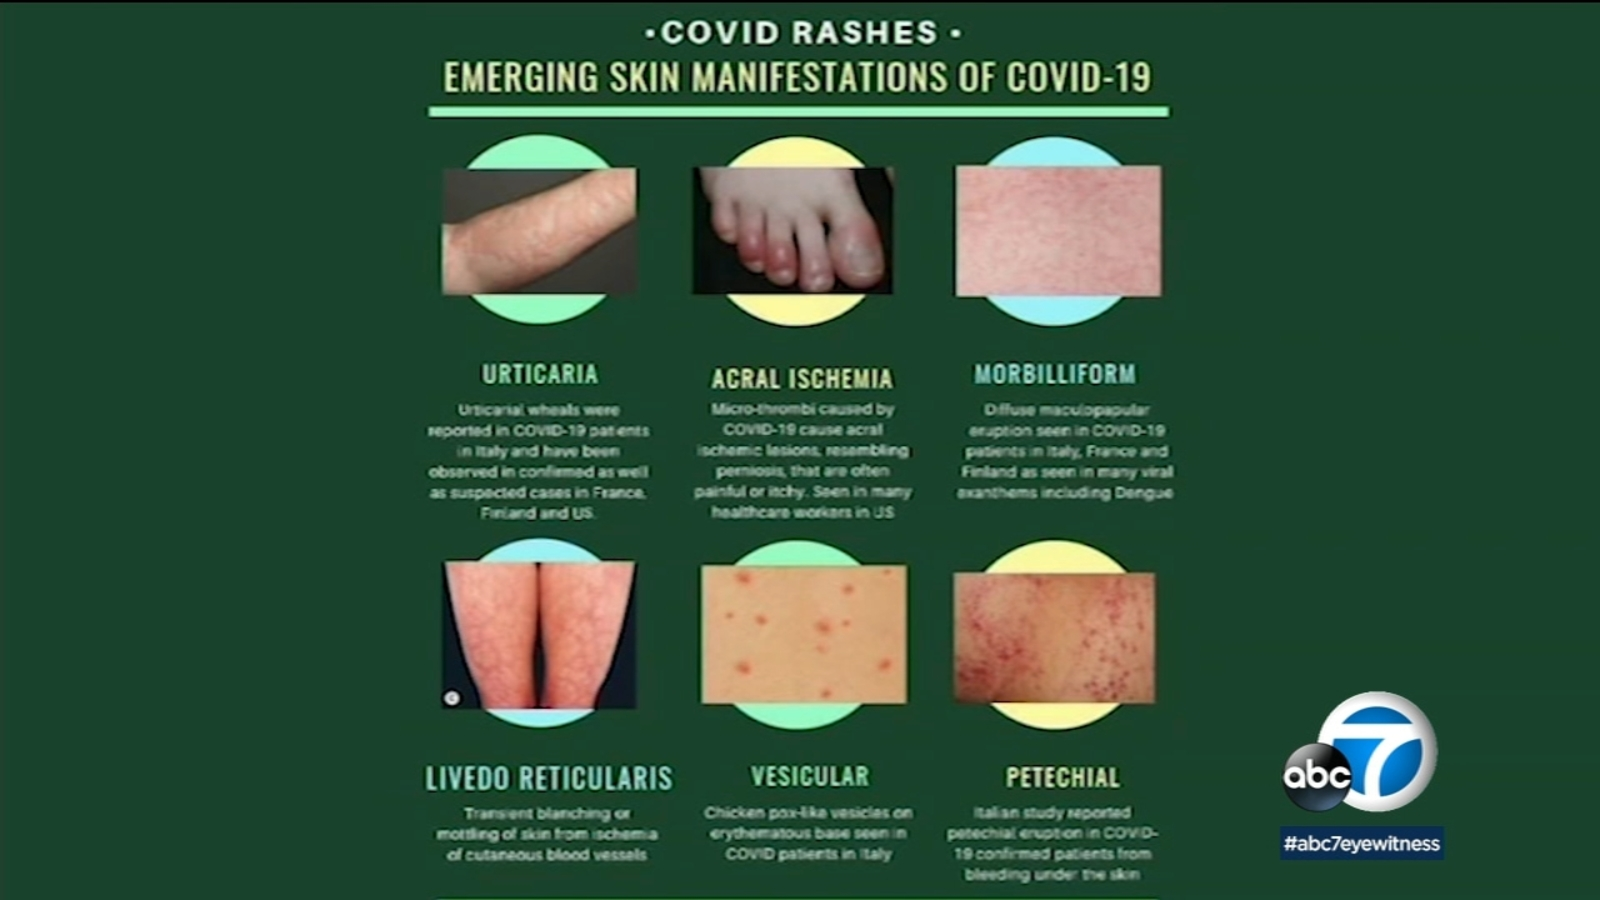 Coronavirus symptoms: Dermatology organization issues guidance on skin rashes associated with COVID-19 - WLS-TV